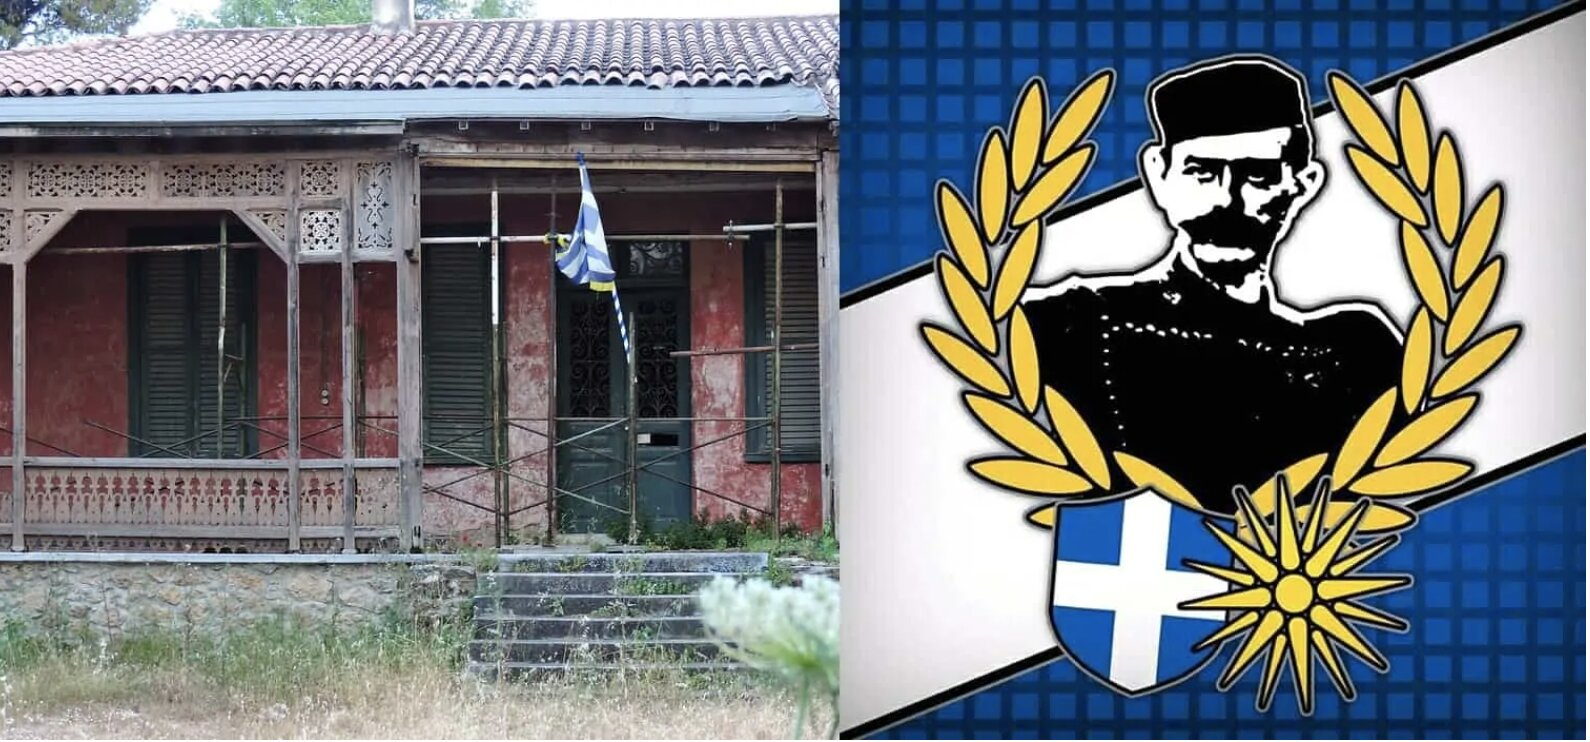 House of one of Greece's greatest war heroes, Pavlos Melas, to become a military school